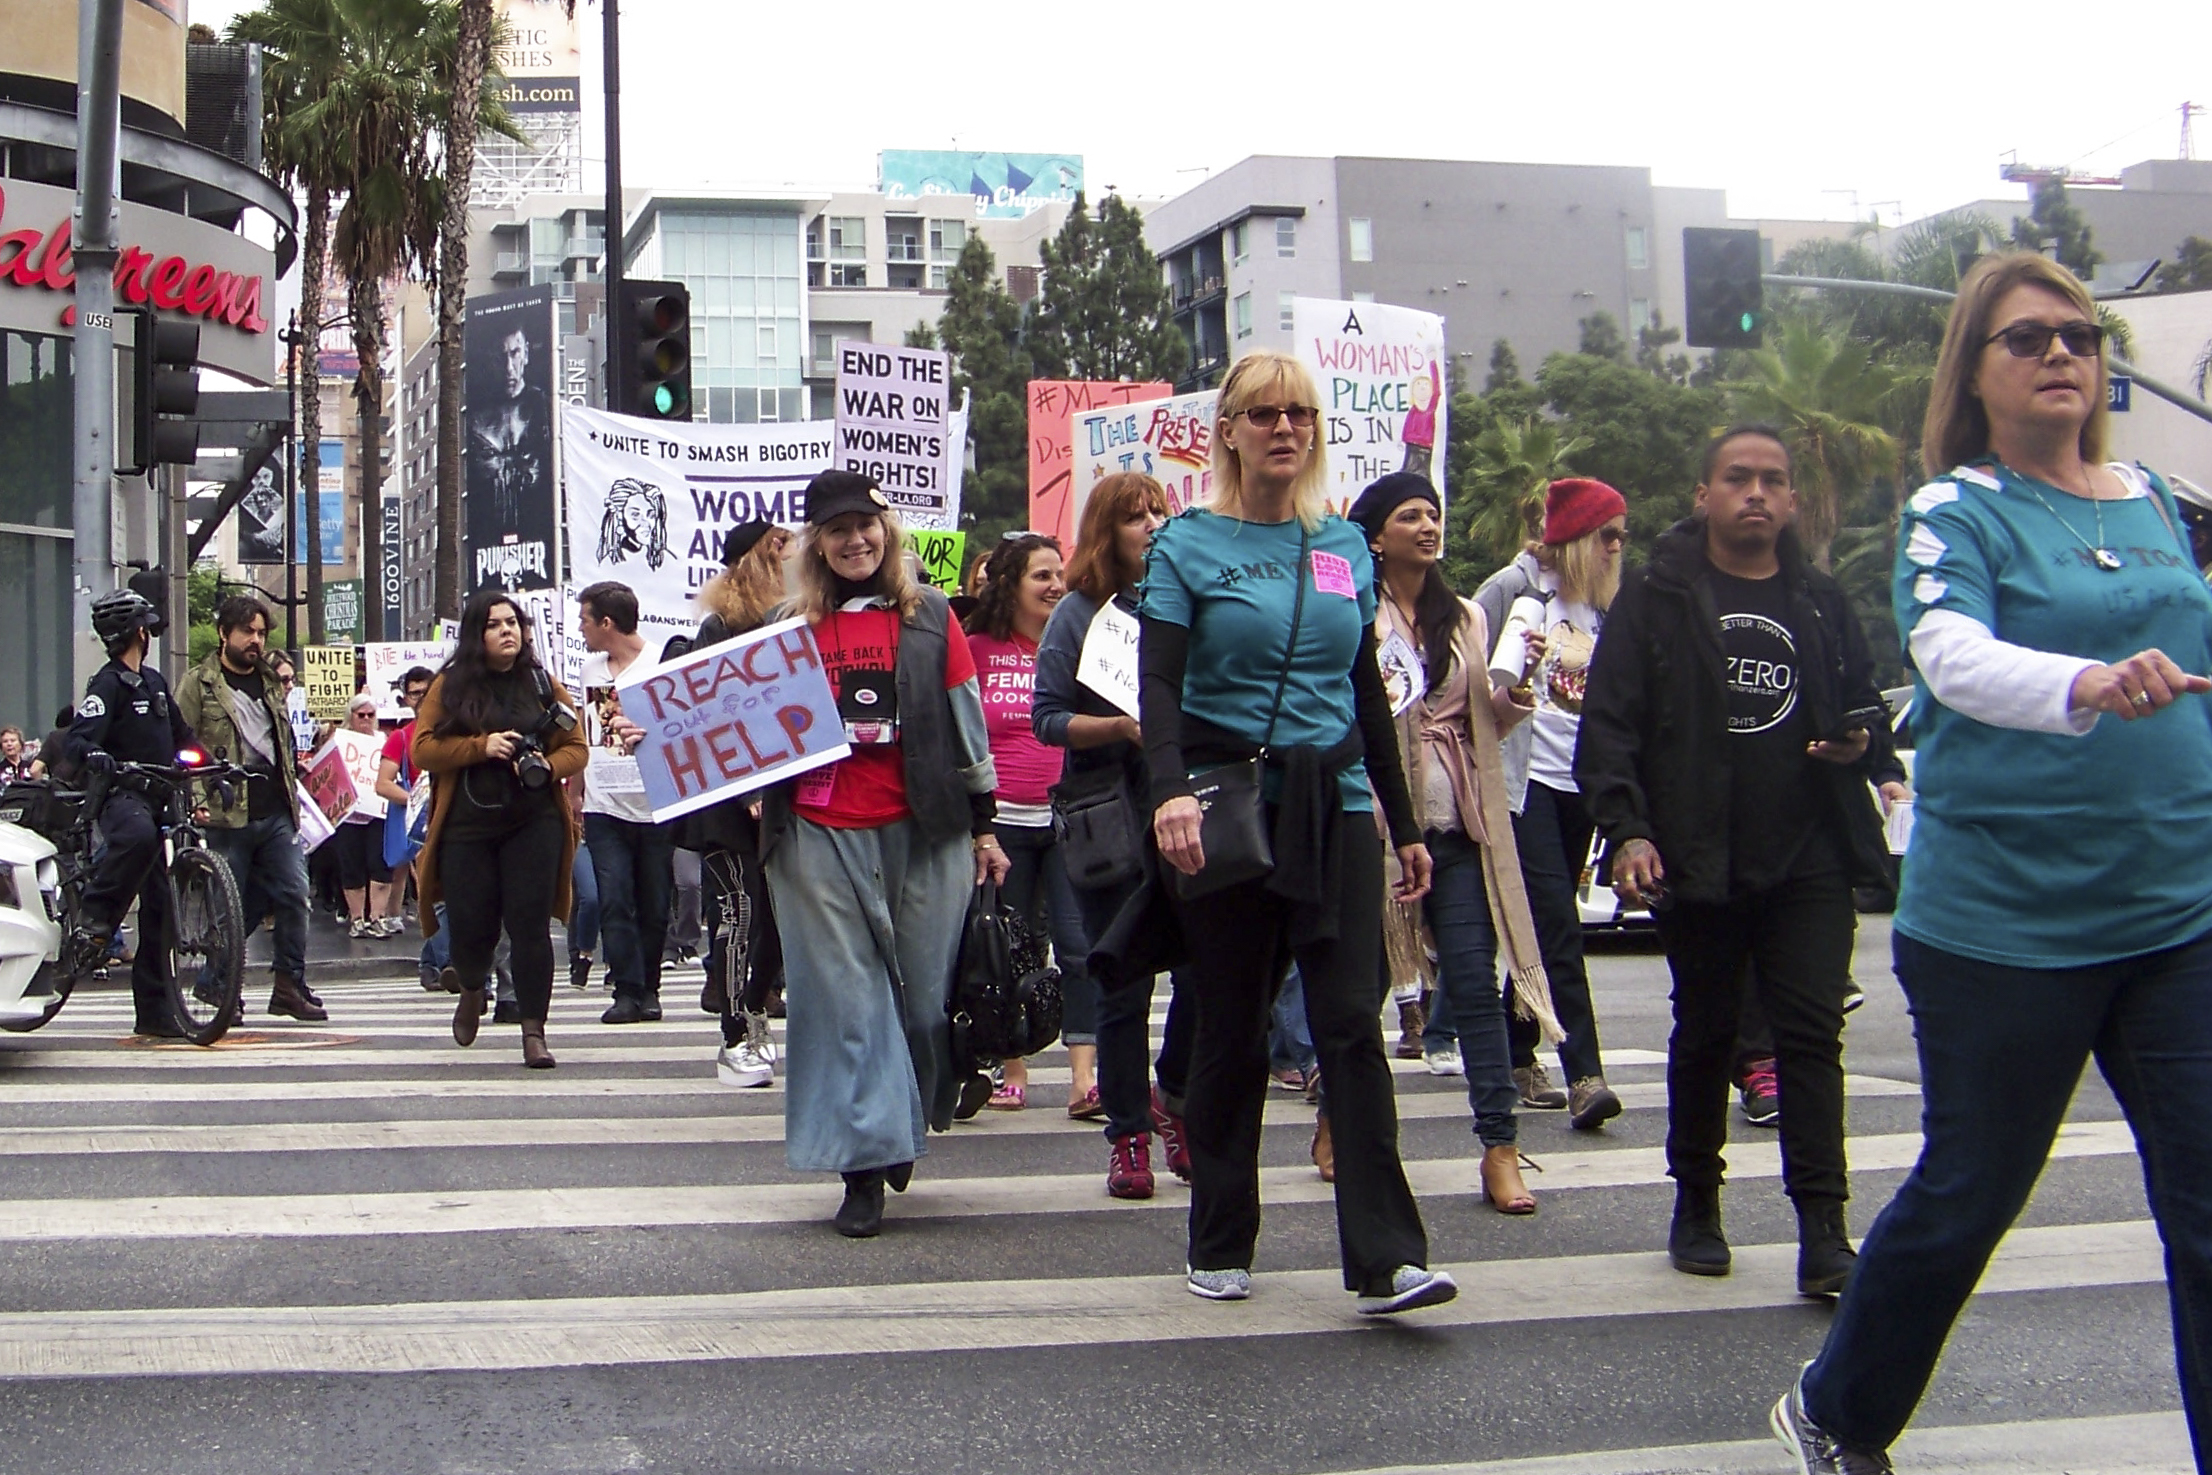 Me Too Protesters take on the final stretch of their 1 mile journey to the CNN Building still standing loud and strong on November 12, 2017 in Hollywood, Calif.  Photo by Jakob Zermeno